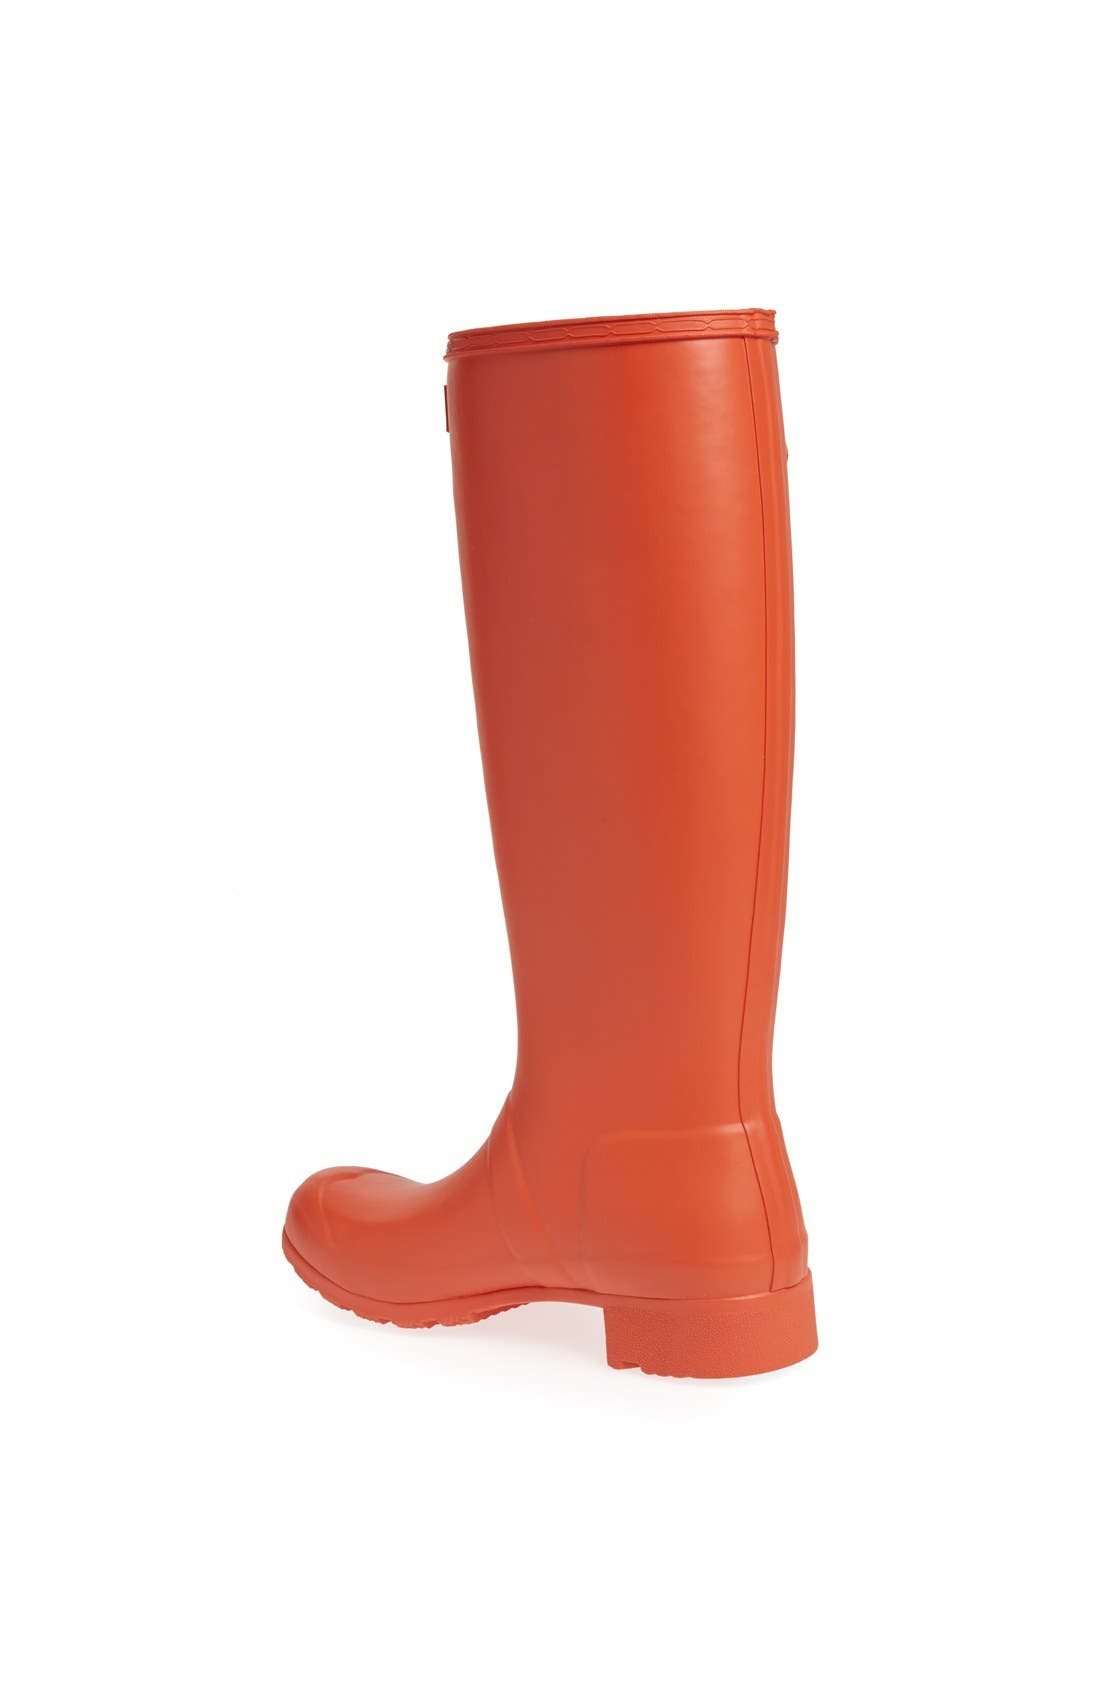 'Tour' Packable Rain Boot,                             Alternate thumbnail 51, color,